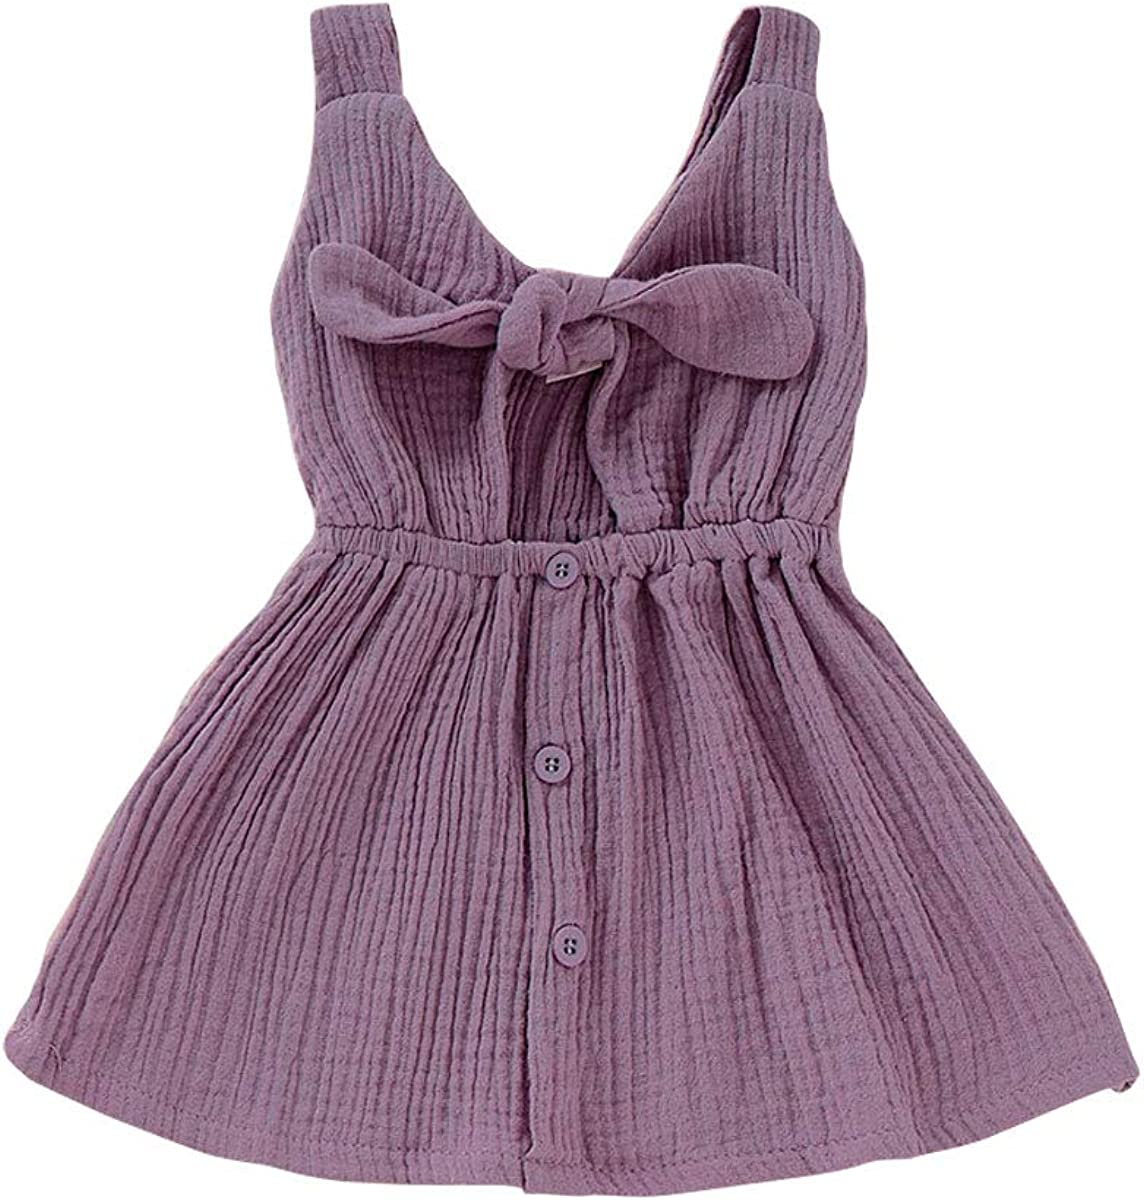 OPAWO Toddler Baby Girl Sleeveless Dress Princess Summer Backless Bowknot Overall Sundress 6M-4Y